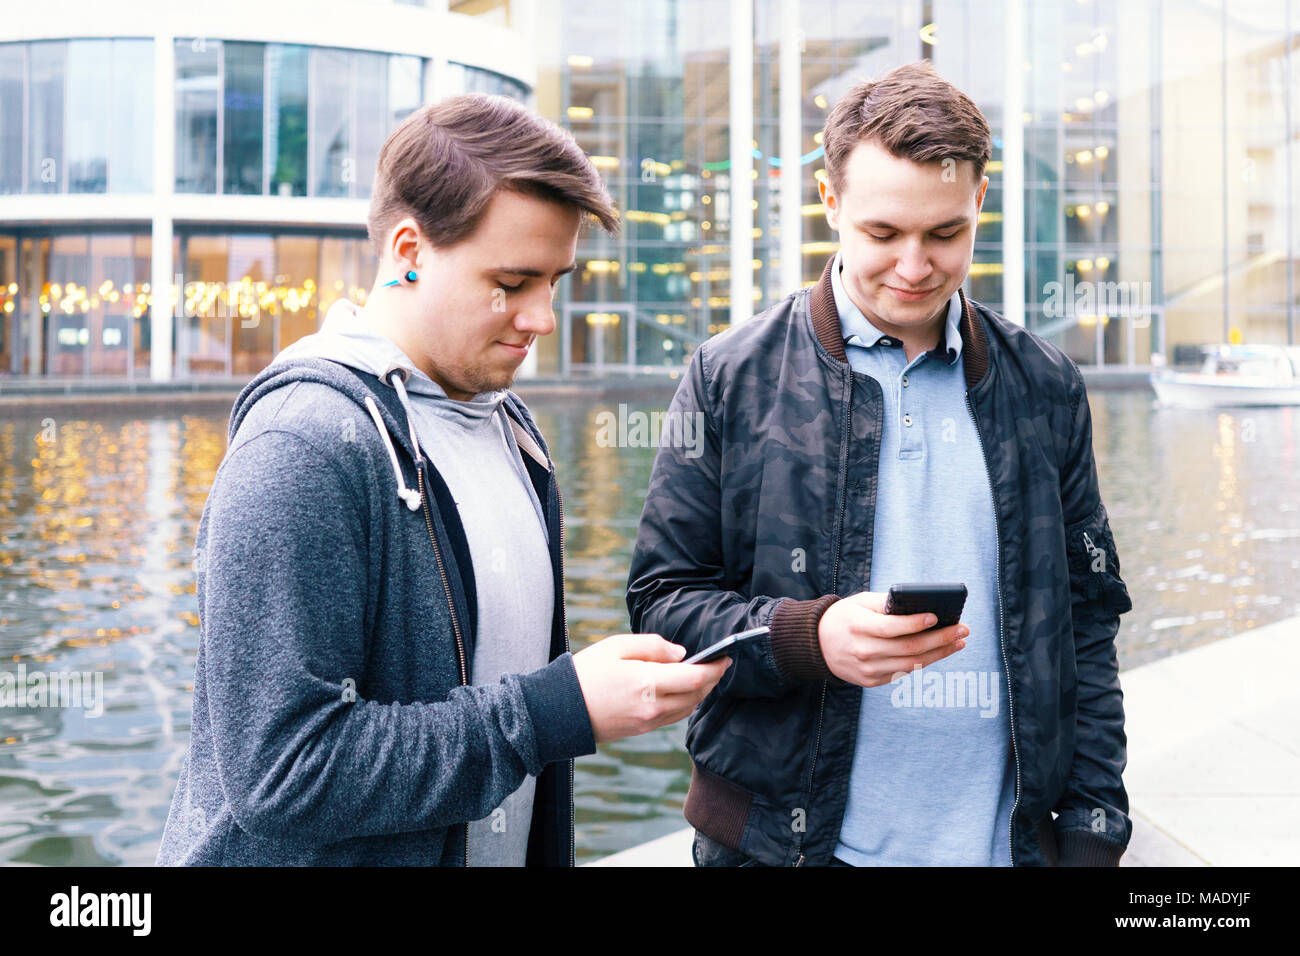 two mobile phone addicted male teenagers standing together looking at smartphone - Stock Image